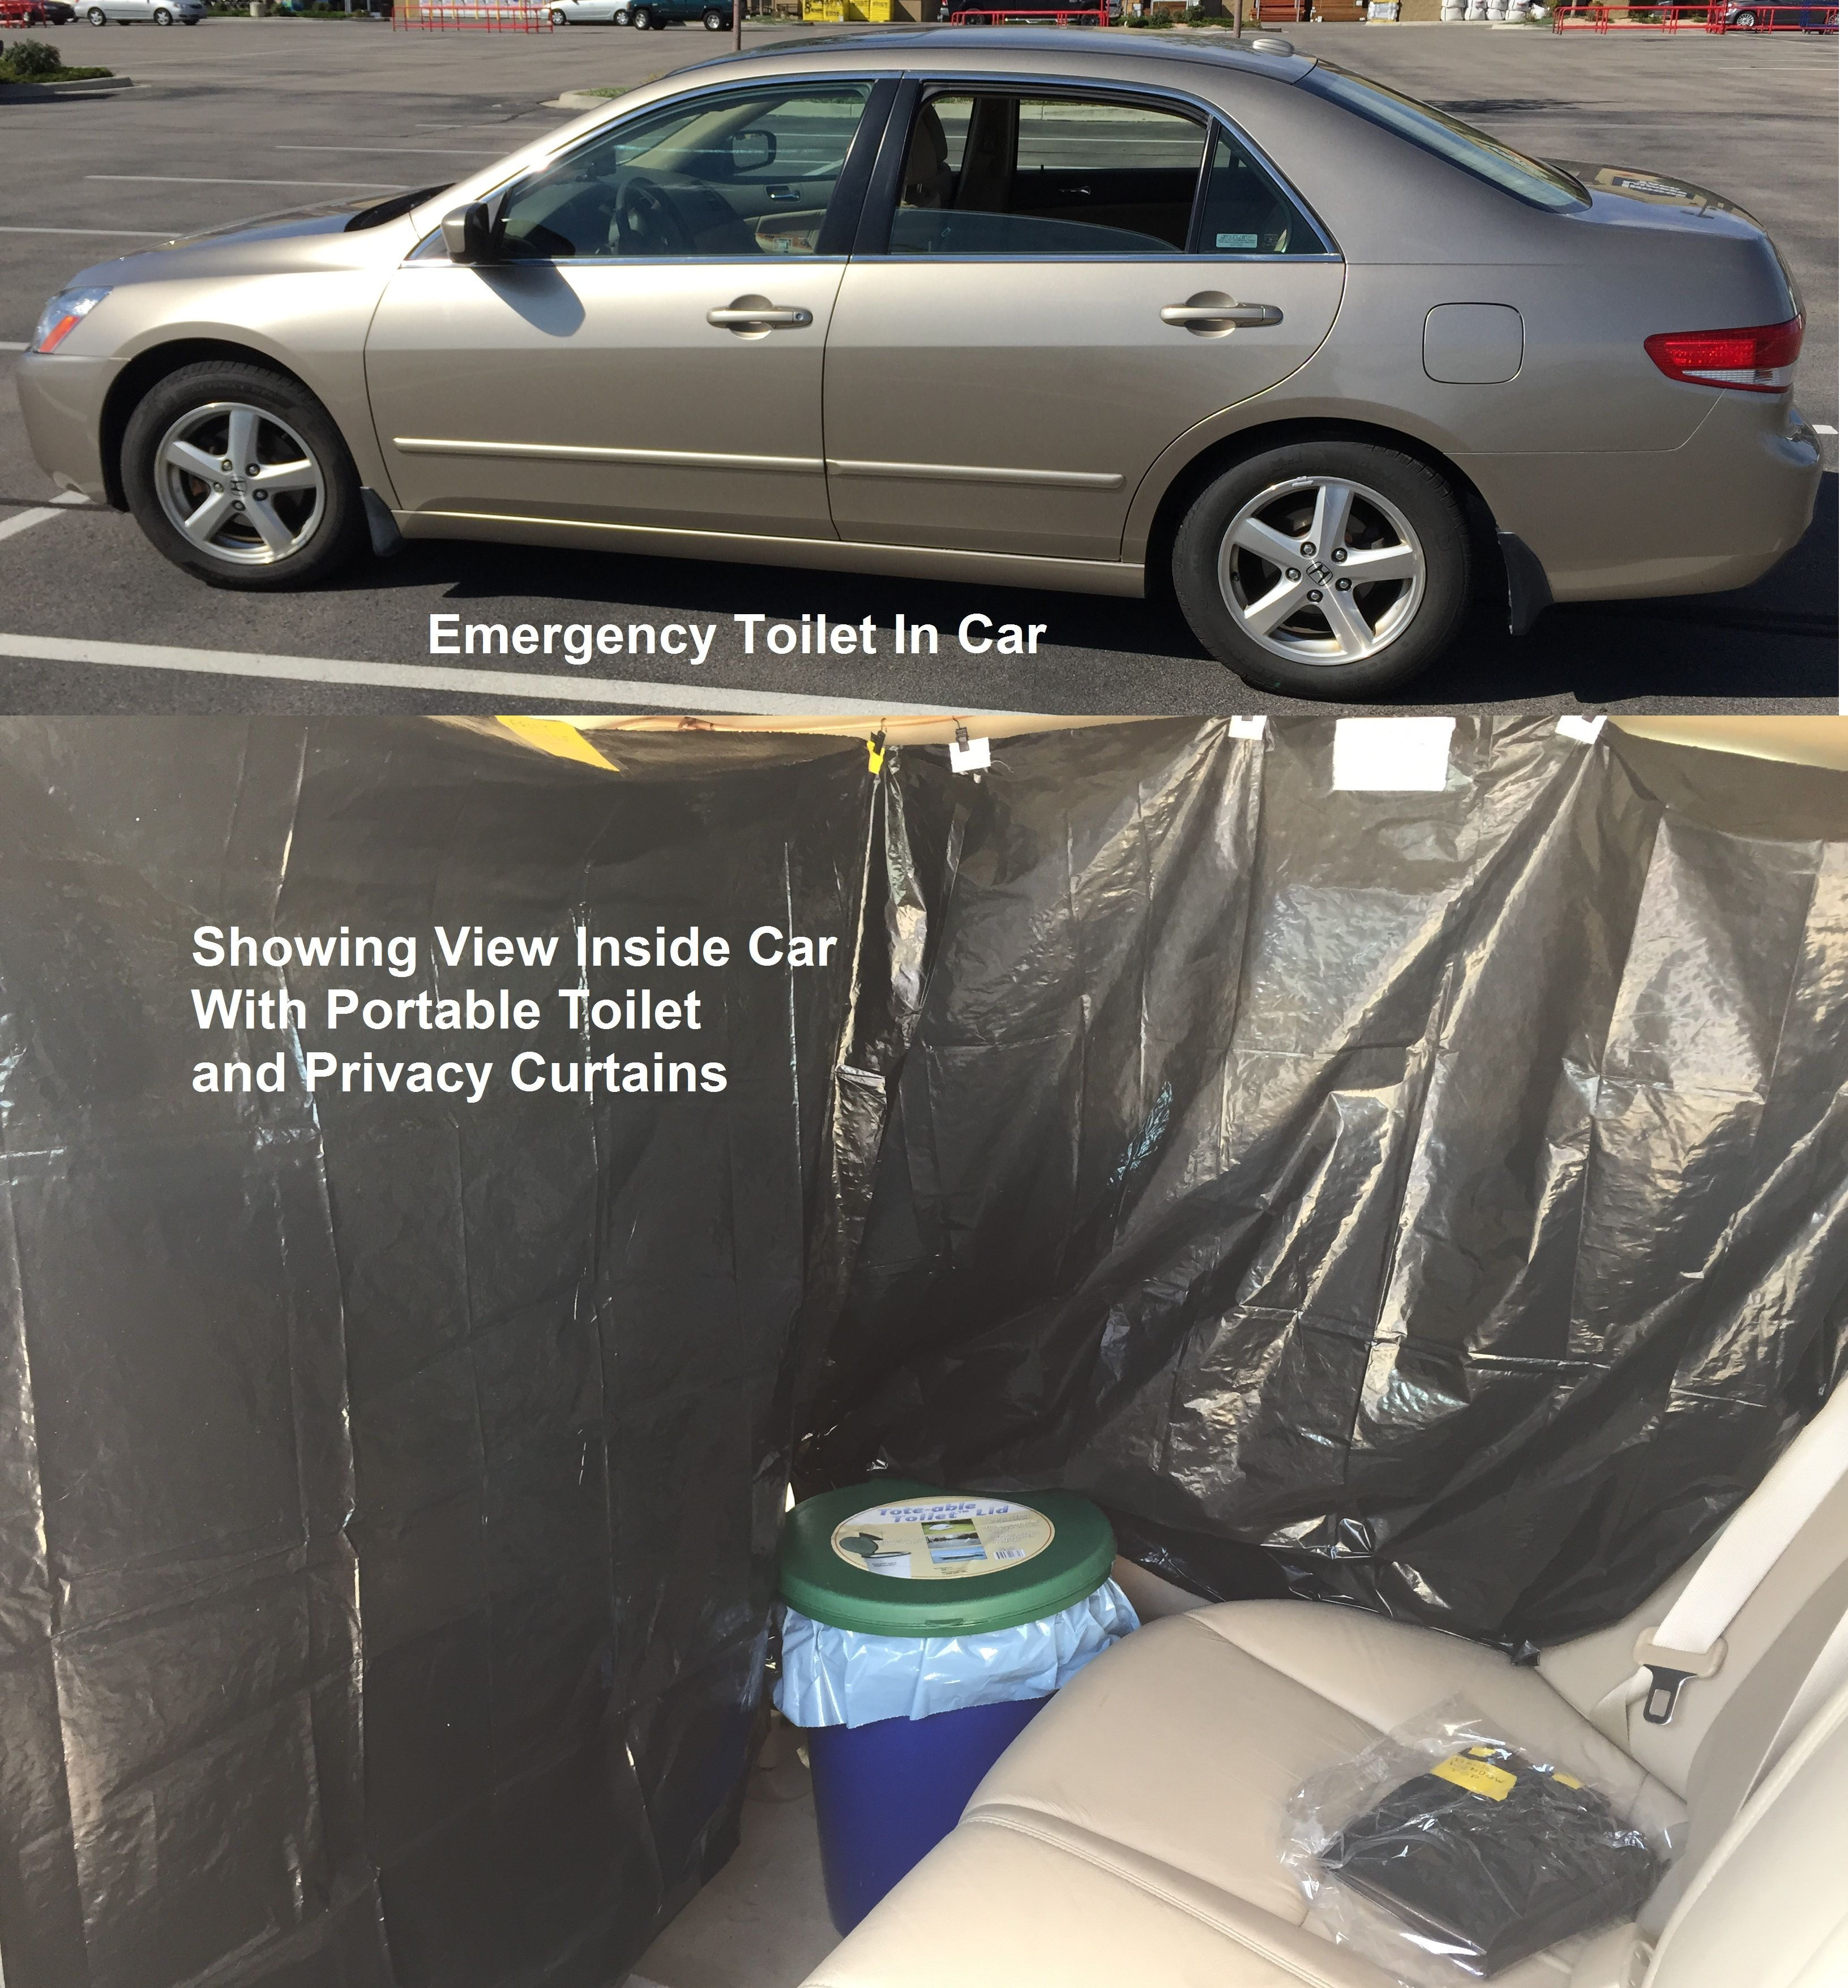 Emergency Portable Toilet In My Car Including Privacy Curtains